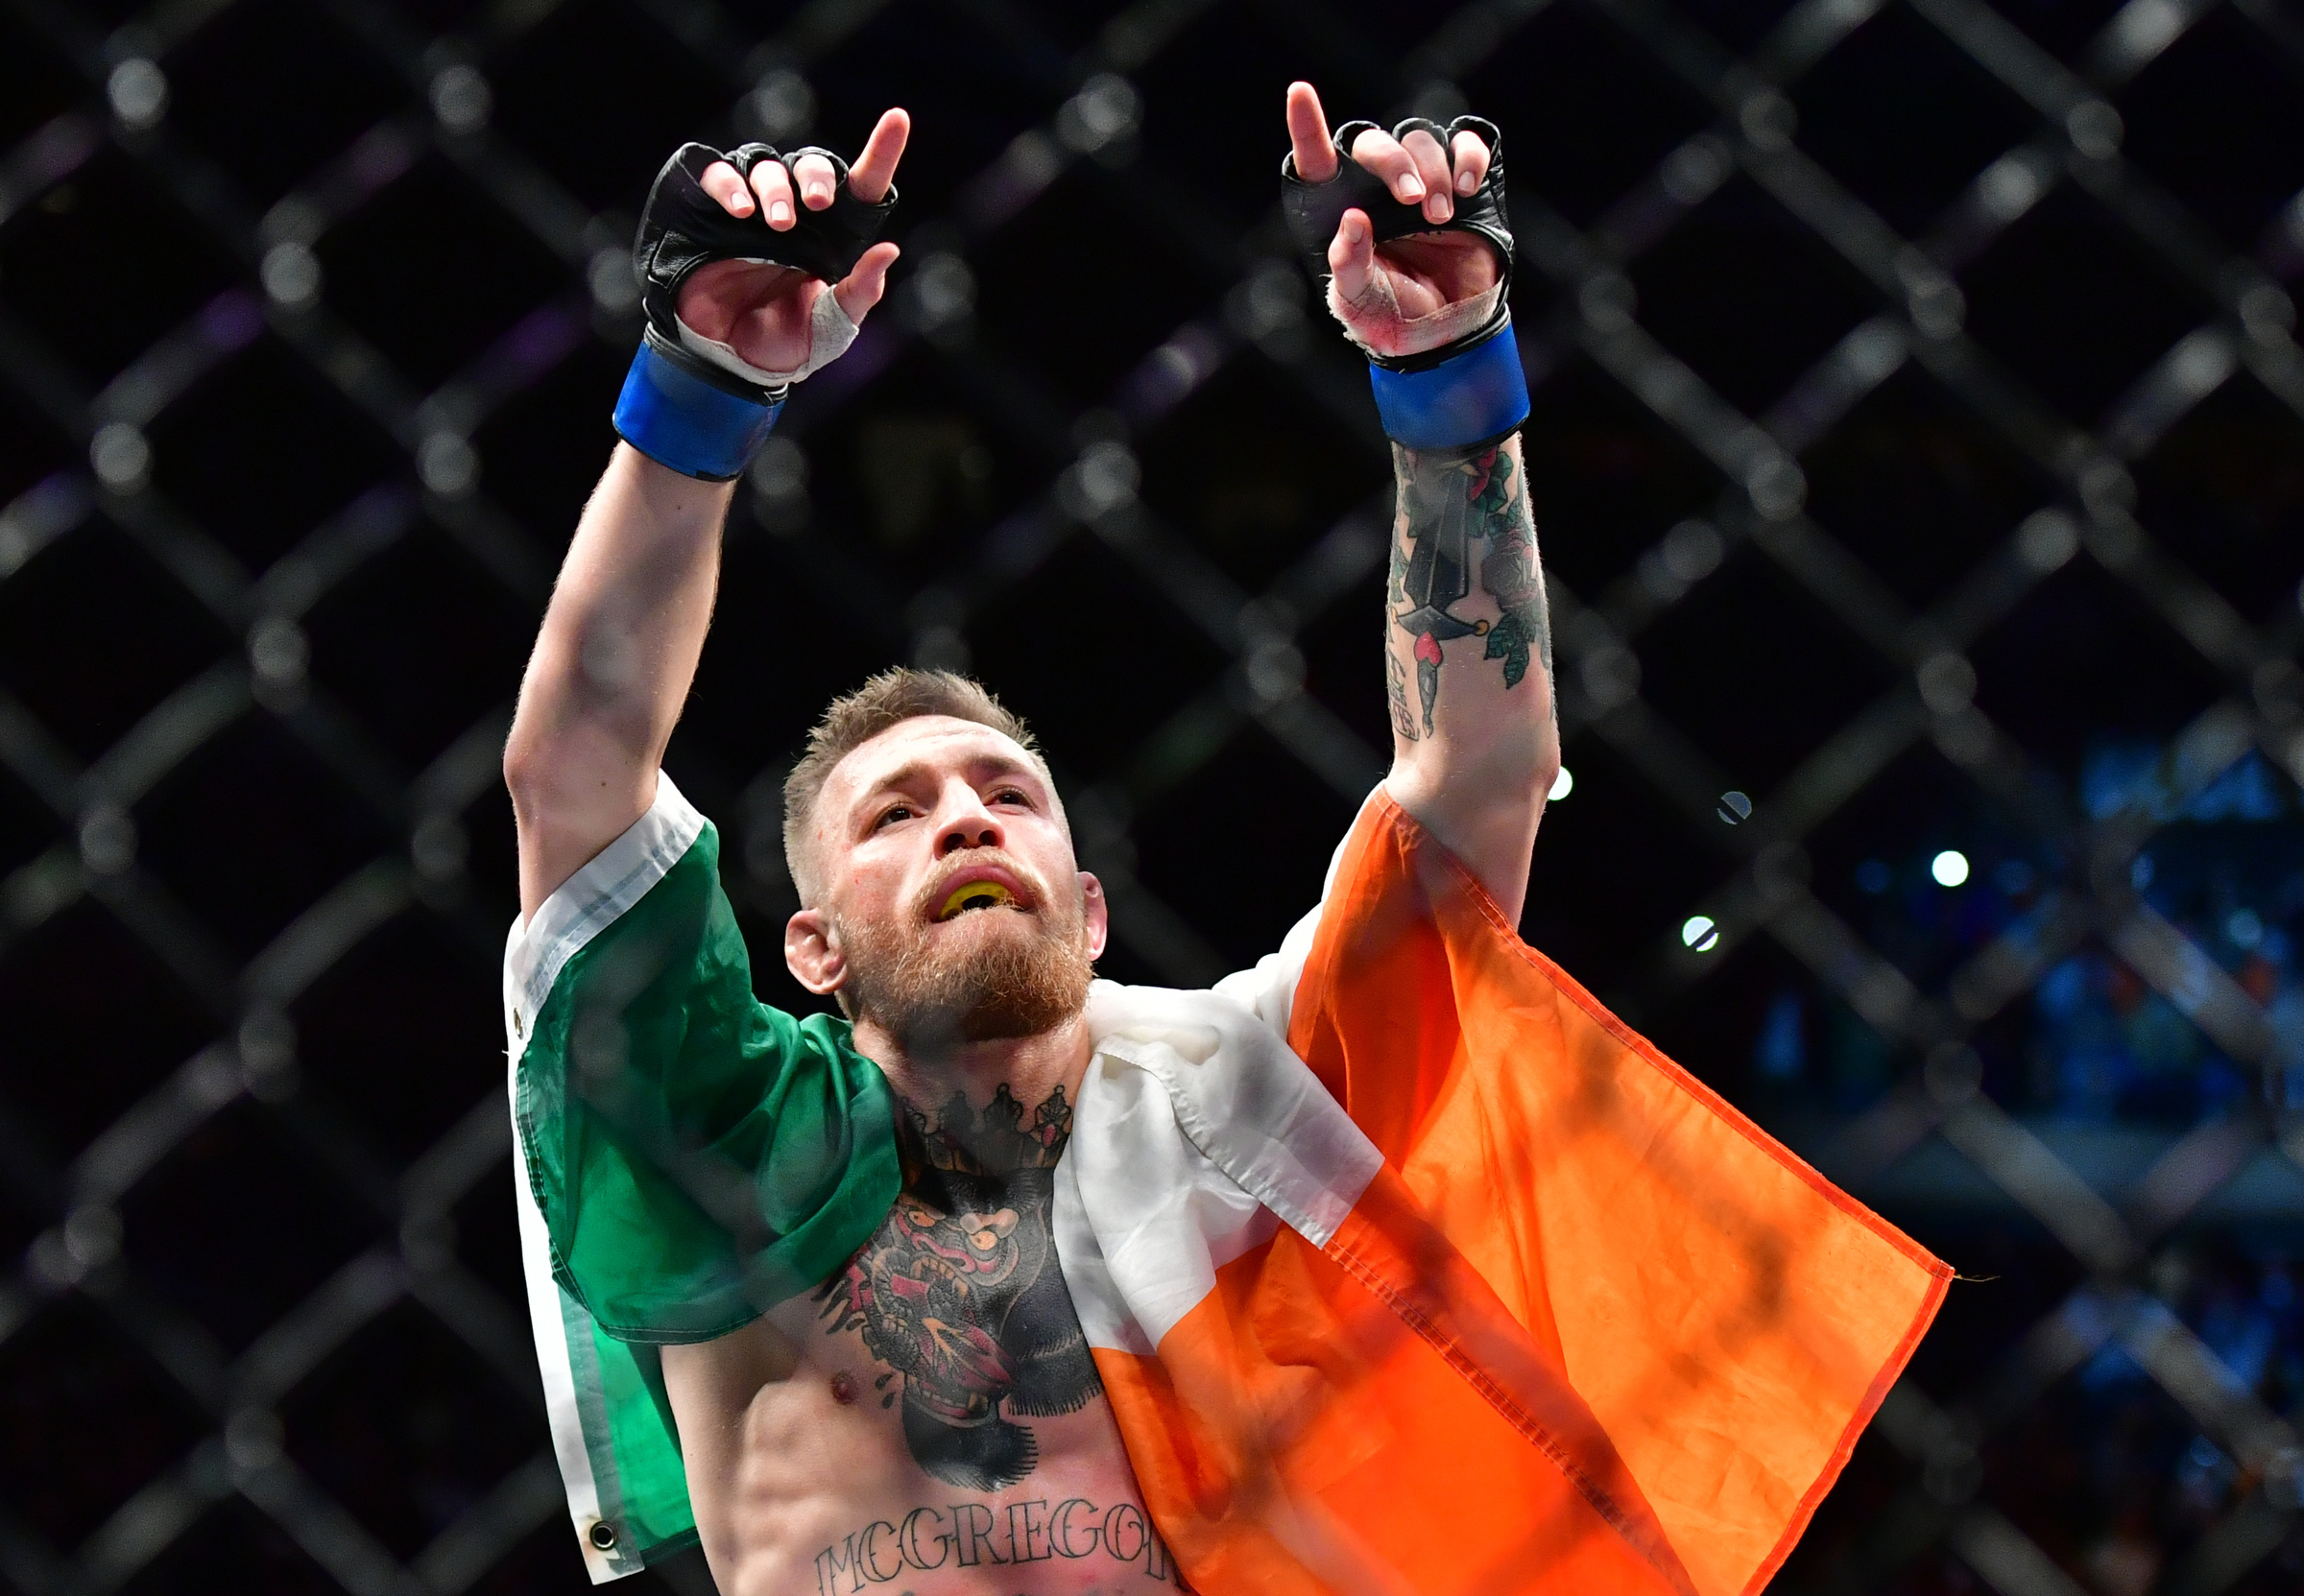 Conor McGregor has announced his retirement from MMA